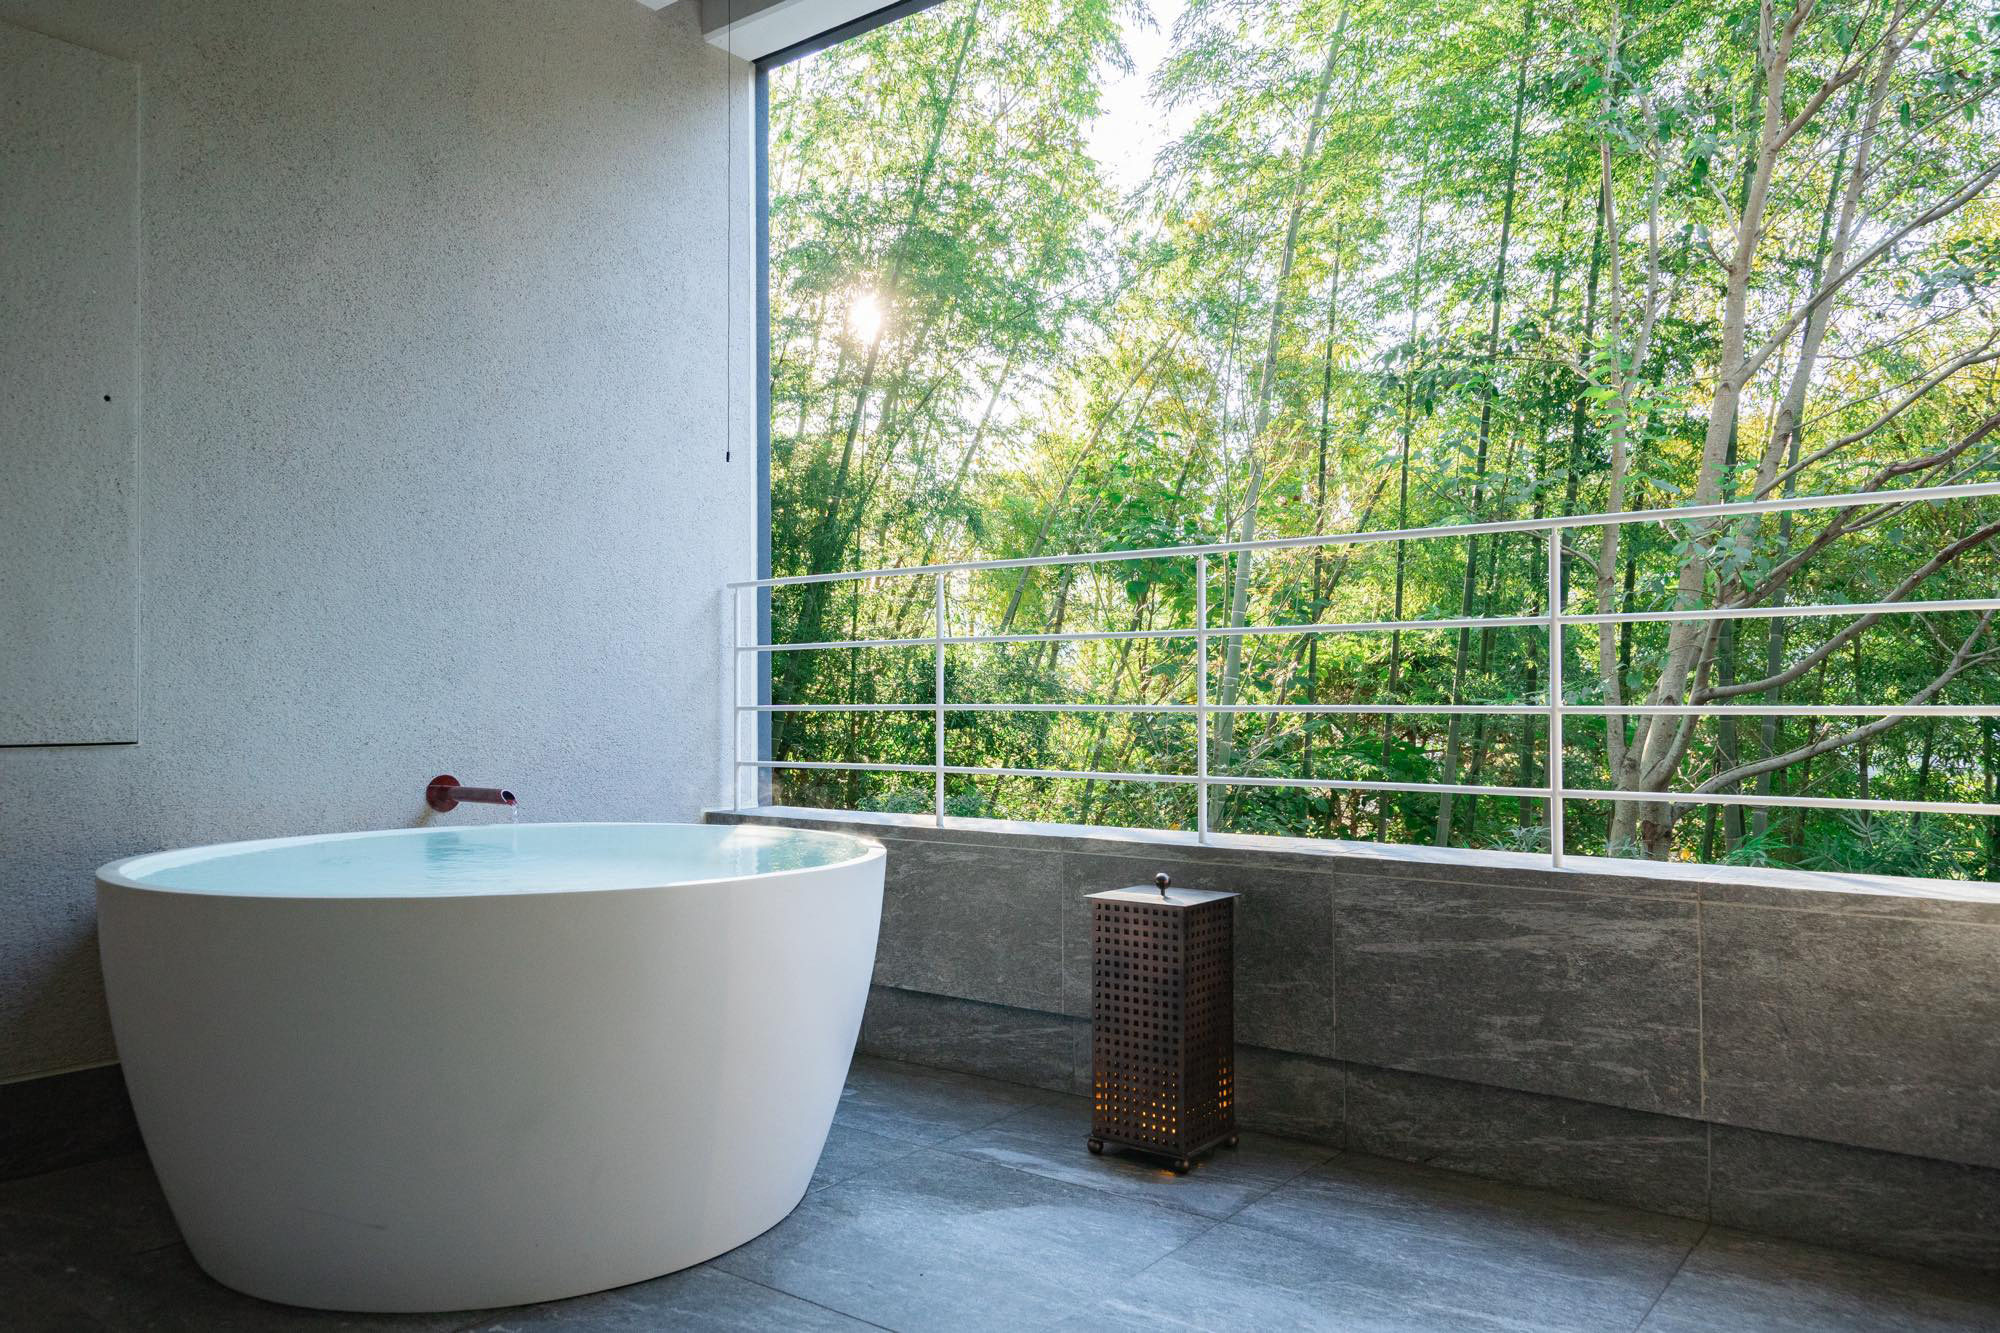 The view and design of the bathtub differ depending on the floor.